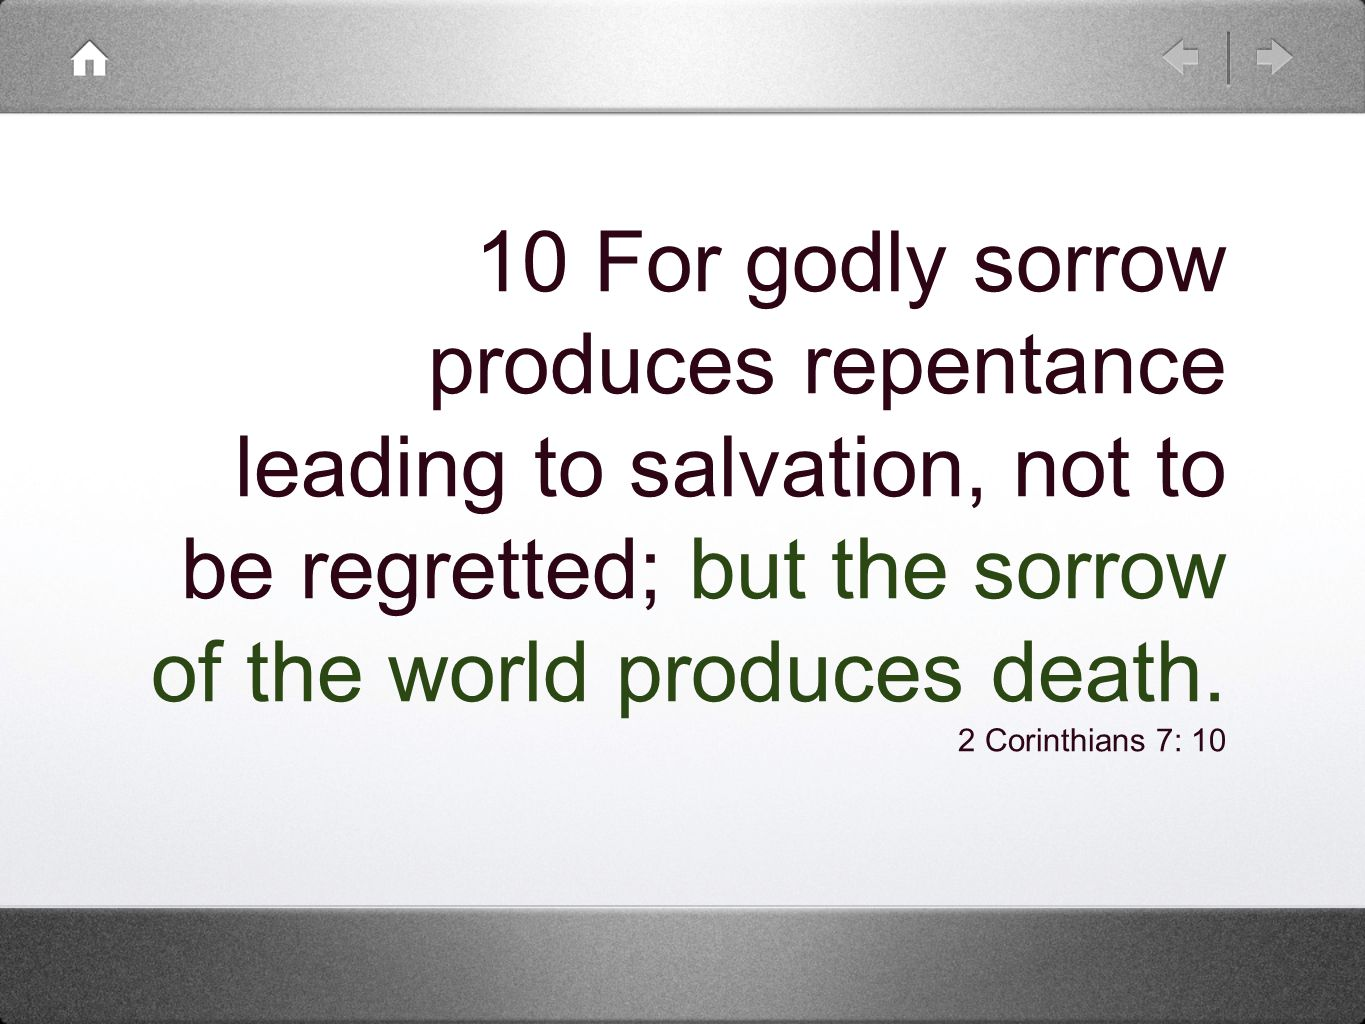 10 For godly sorrow produces repentance leading to salvation, not to be regretted; but the sorrow of the world produces death.